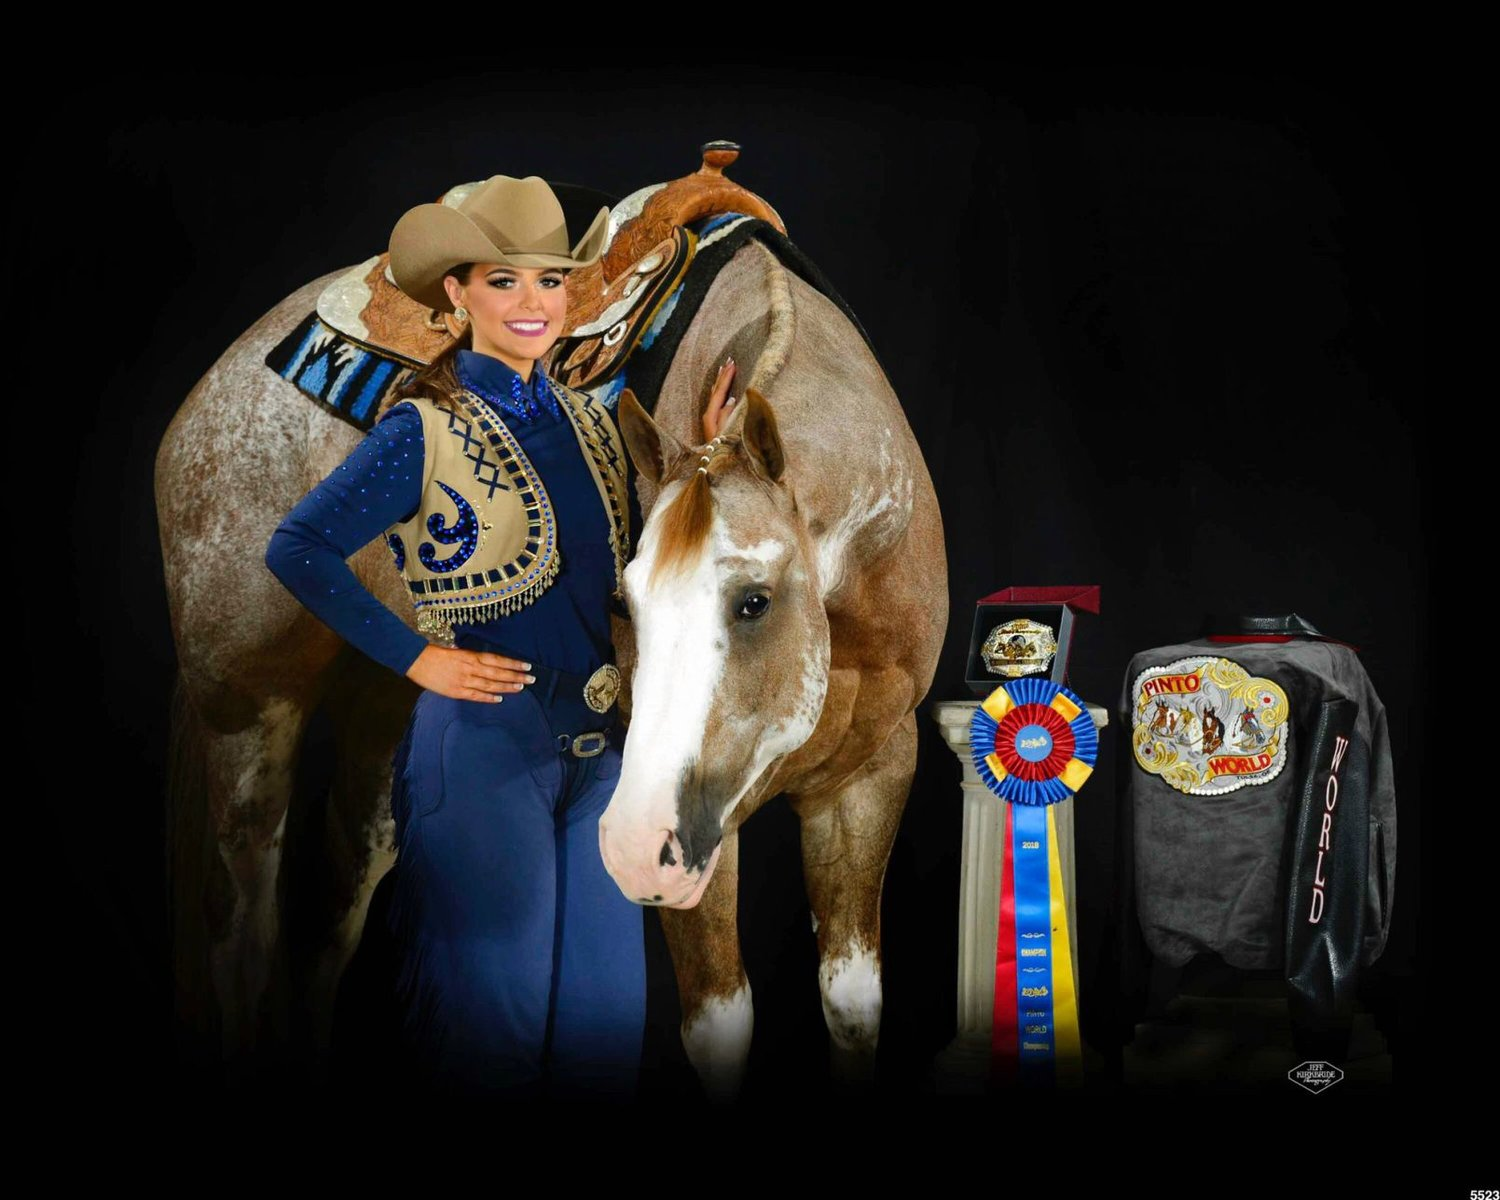 PTHS grad wins world championship for Pinto horses